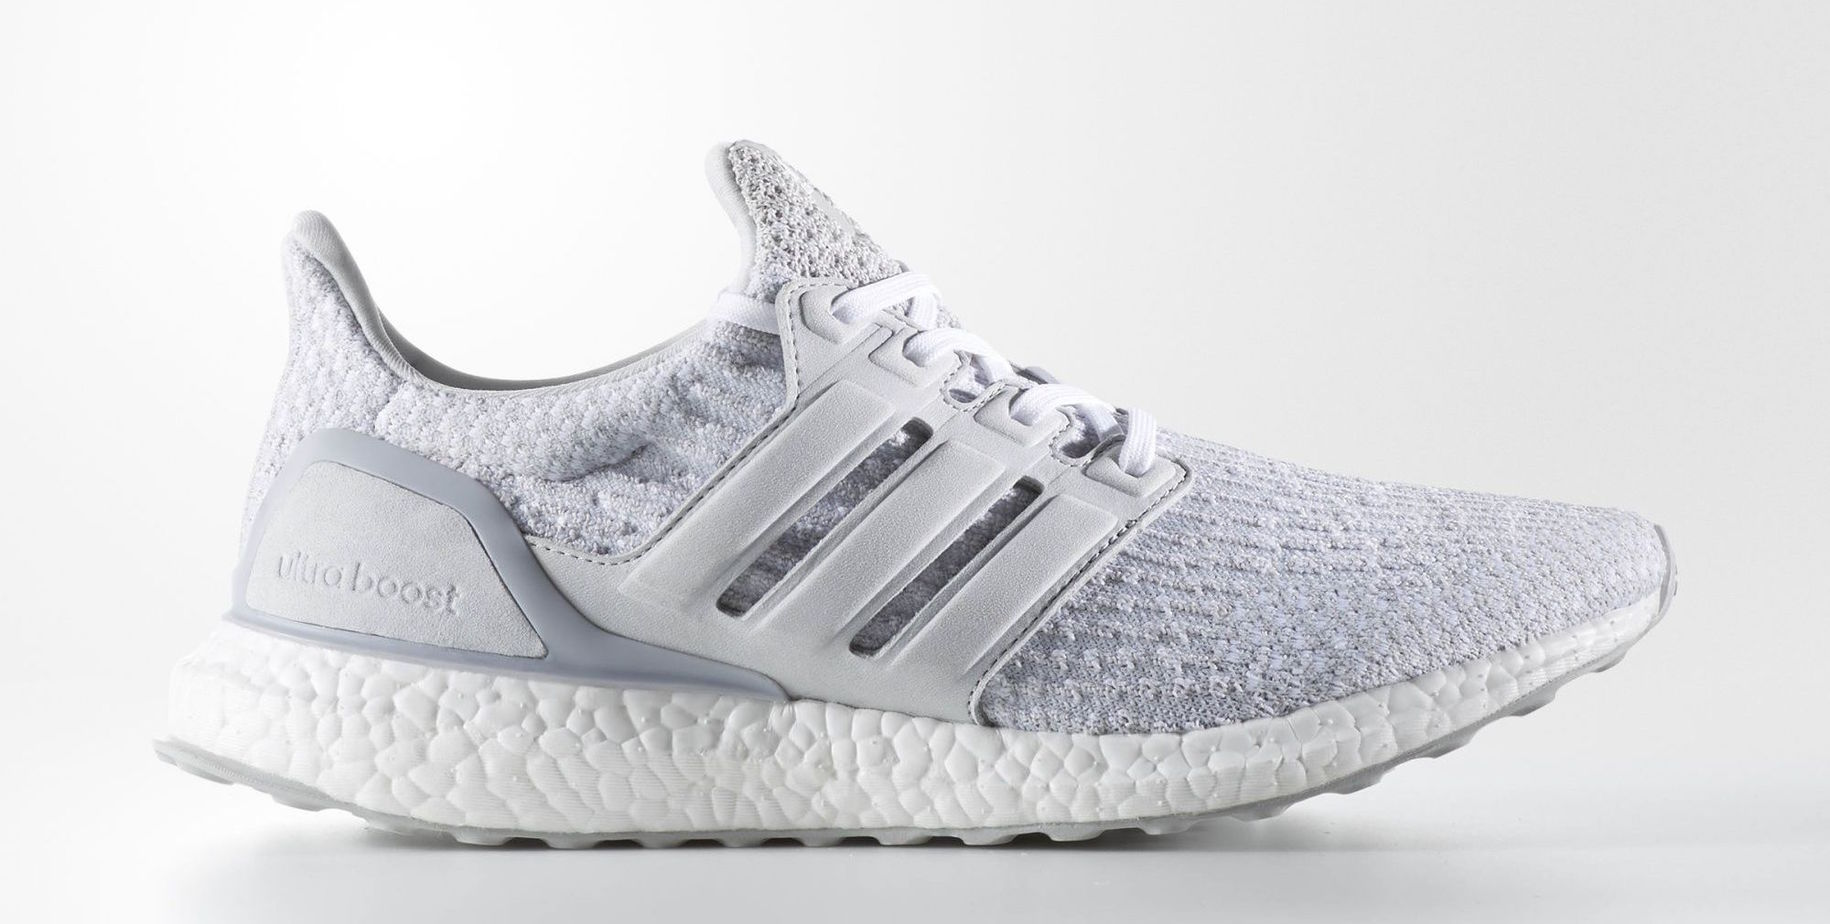 c82fa3d0f7a low price adidas 3.0 ultra boost release 4226a 4eaef